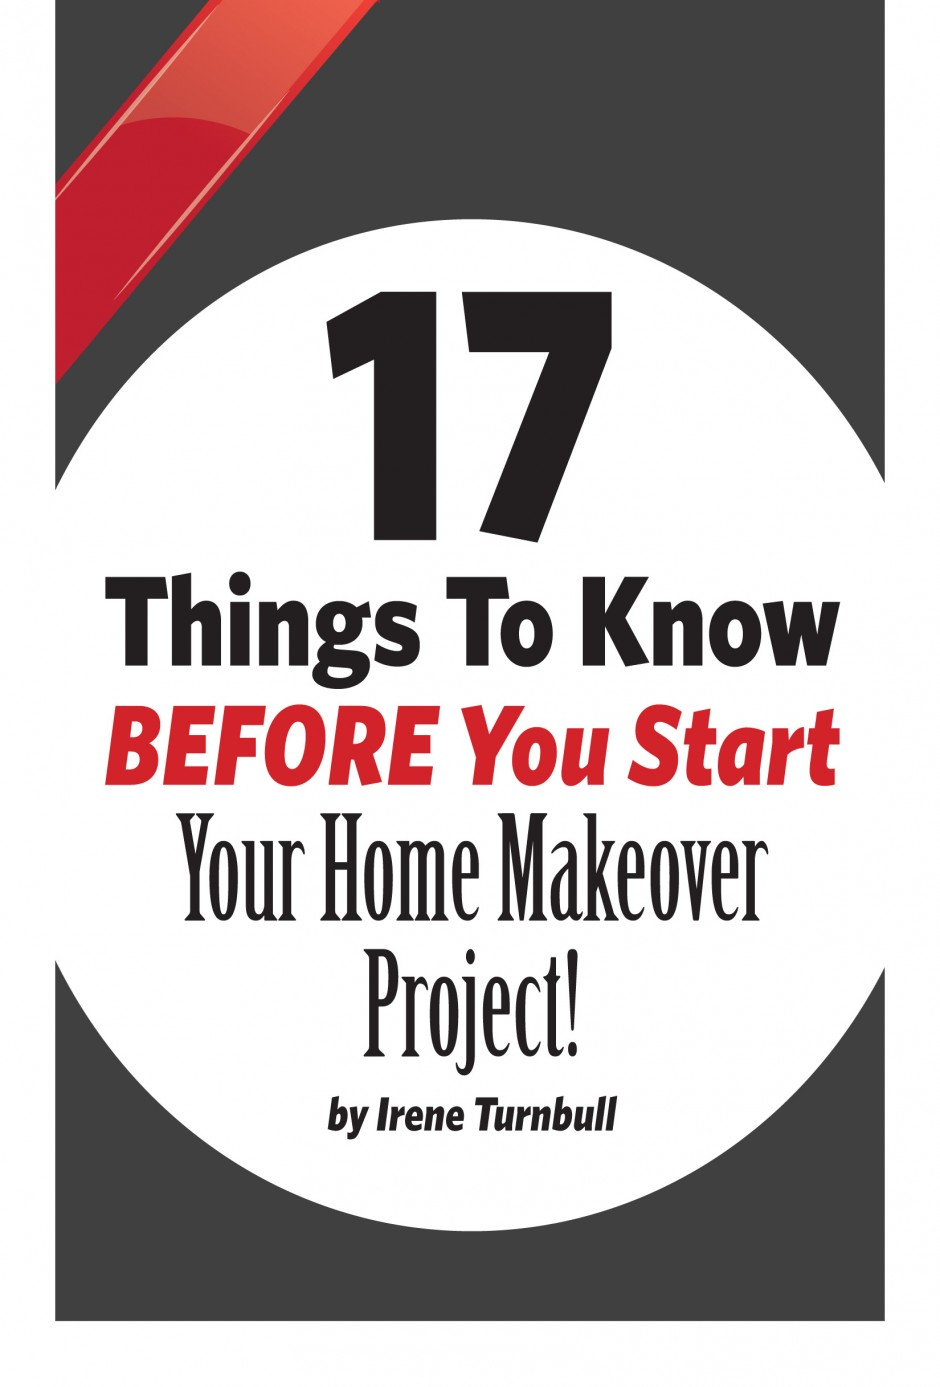 17 Things To Know Before You Start Your Home Makeover Project